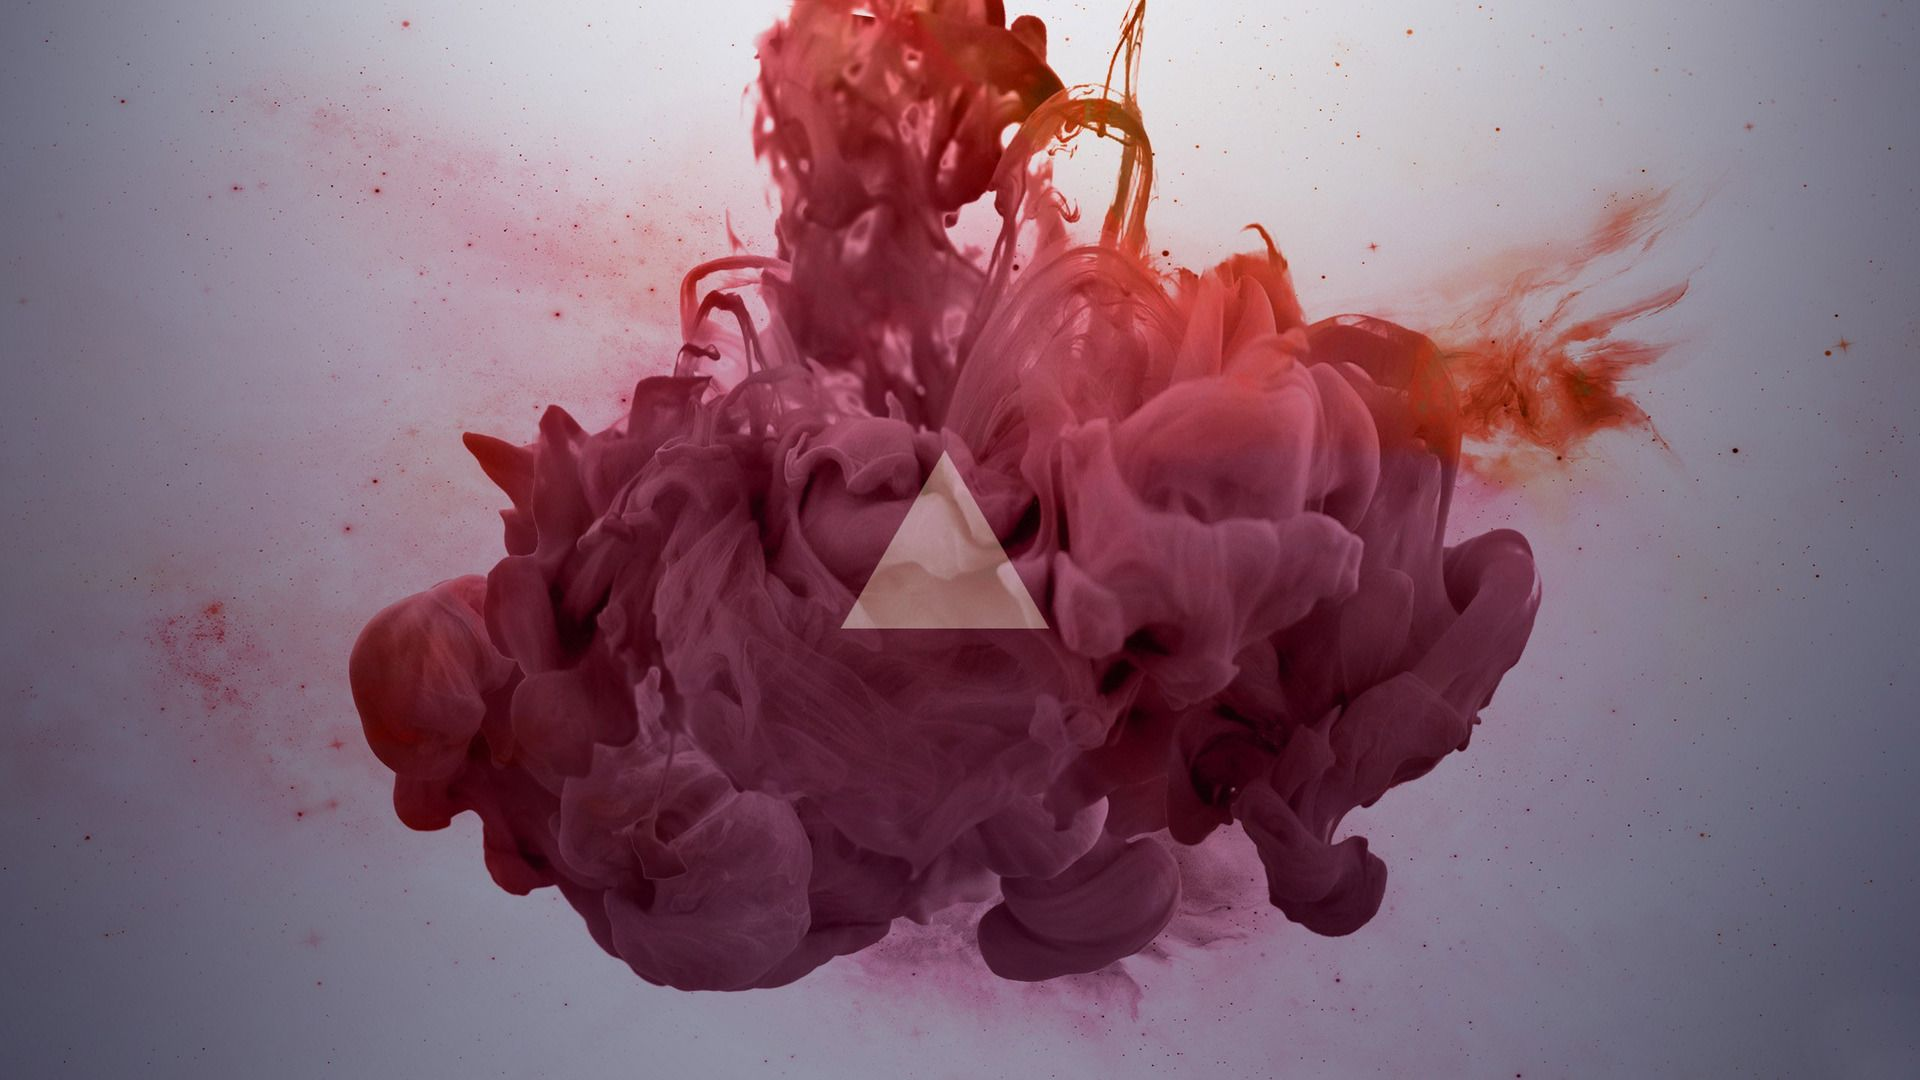 1920x1080 Triangle and ink in water Wallpaper #4339 | ART | Smoke art ...